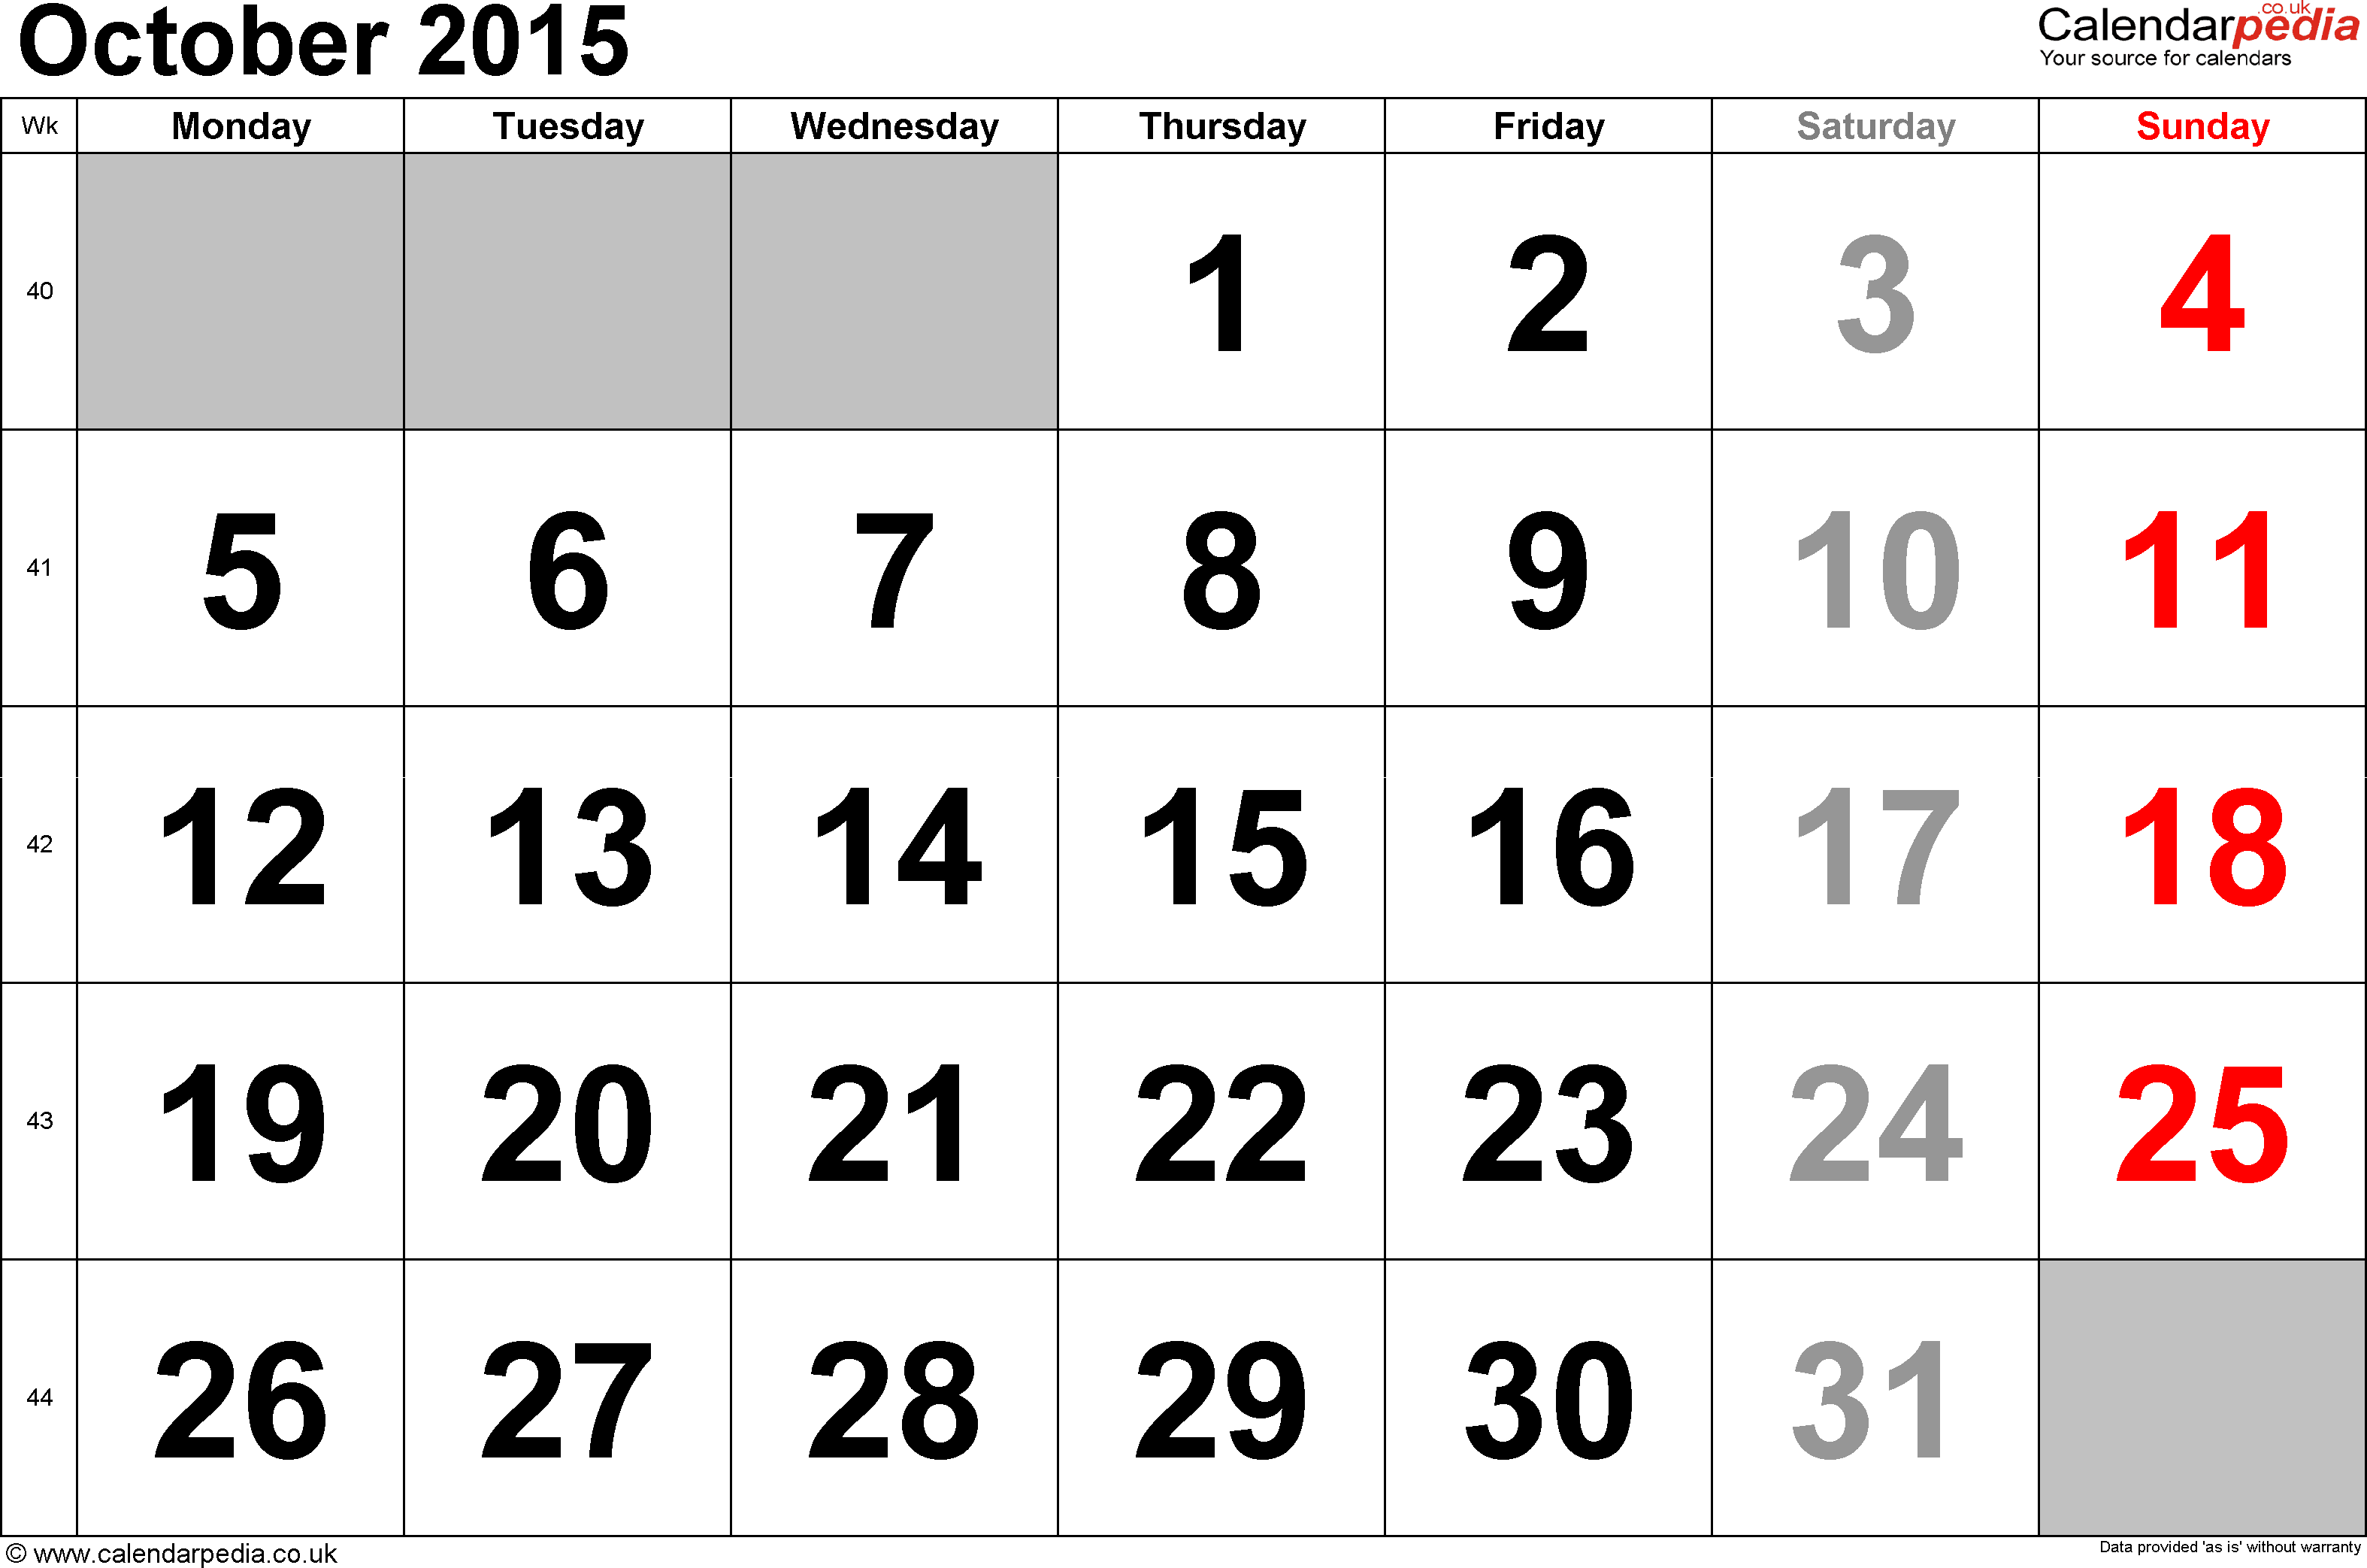 template 2 calendar october 2015 landscape orientation large numerals